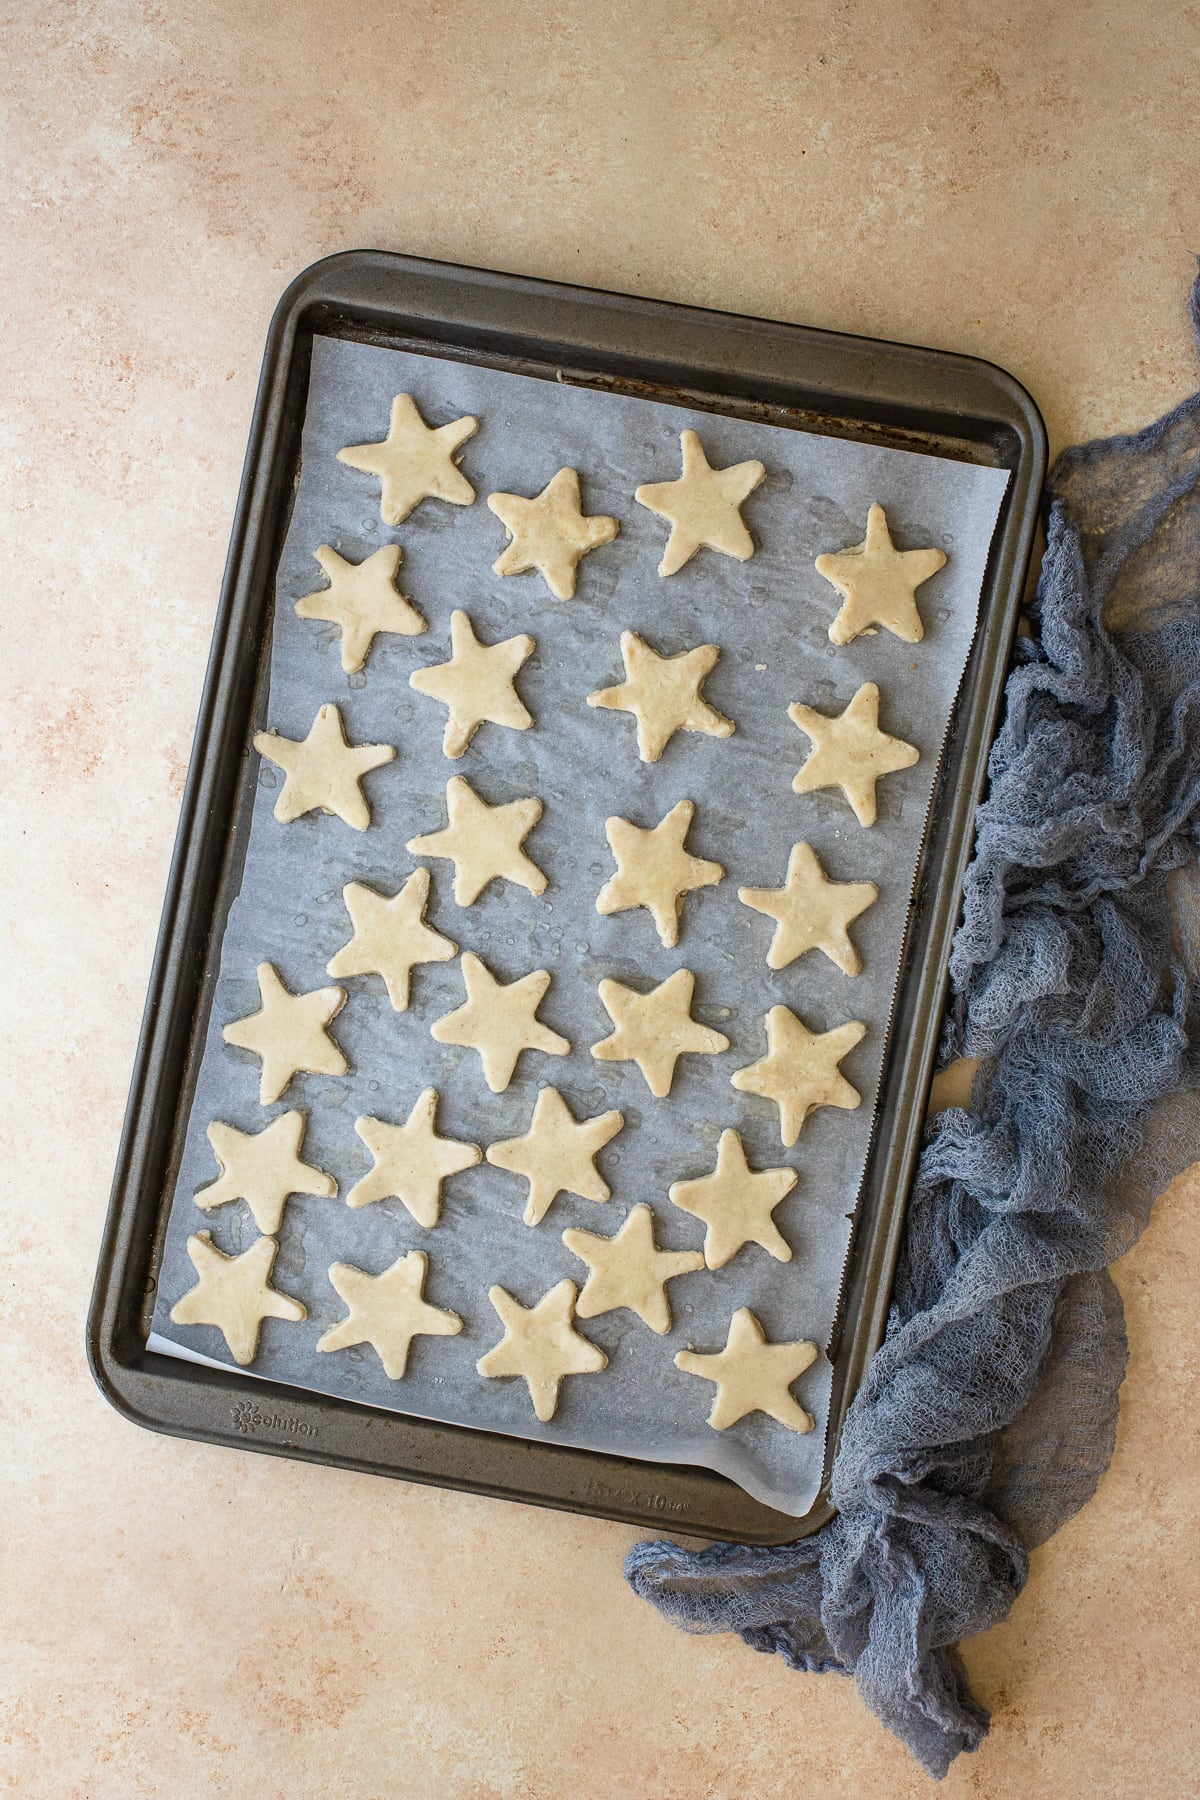 Pie crust stars brushed with egg wash on a parchment-lined baking sheet.